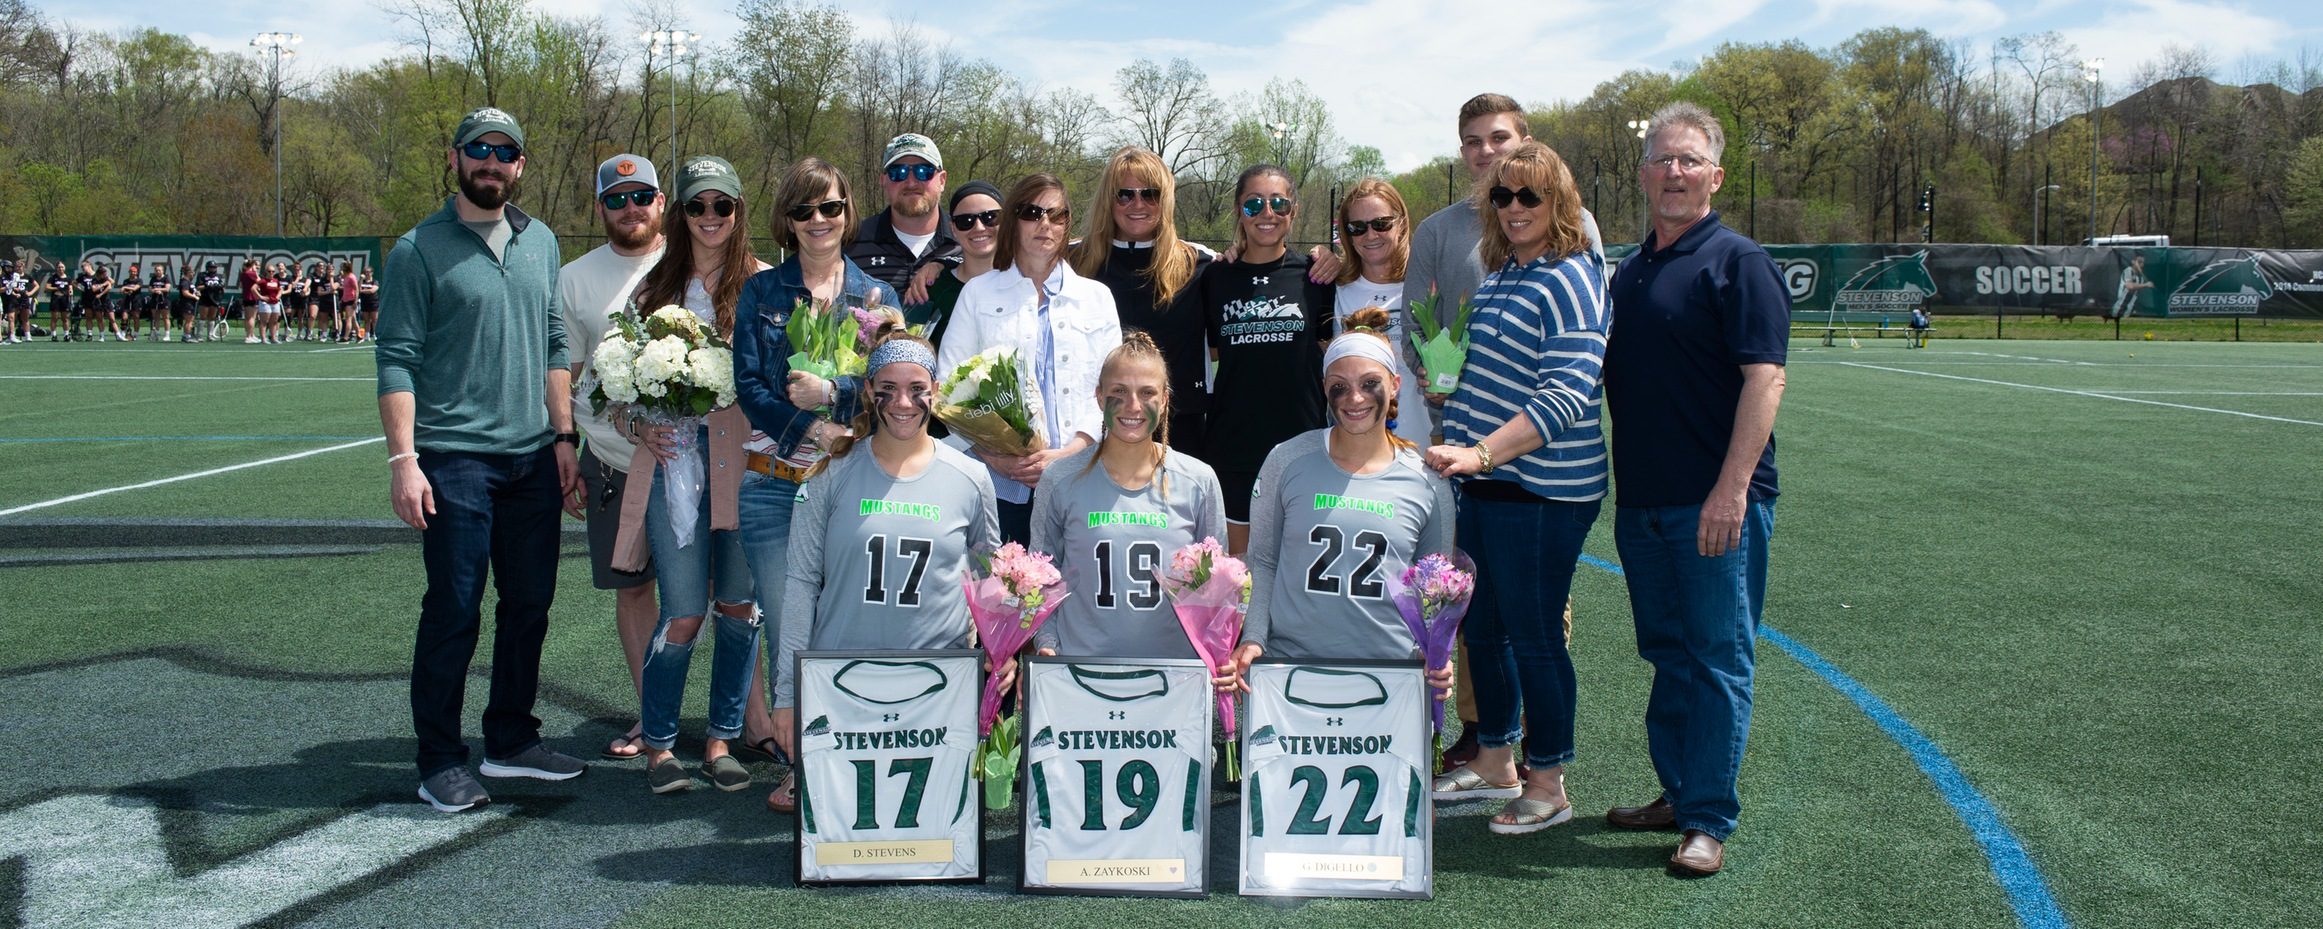 Mustangs Cruise to 22-4 Victory Over Arcadia on Senior Day